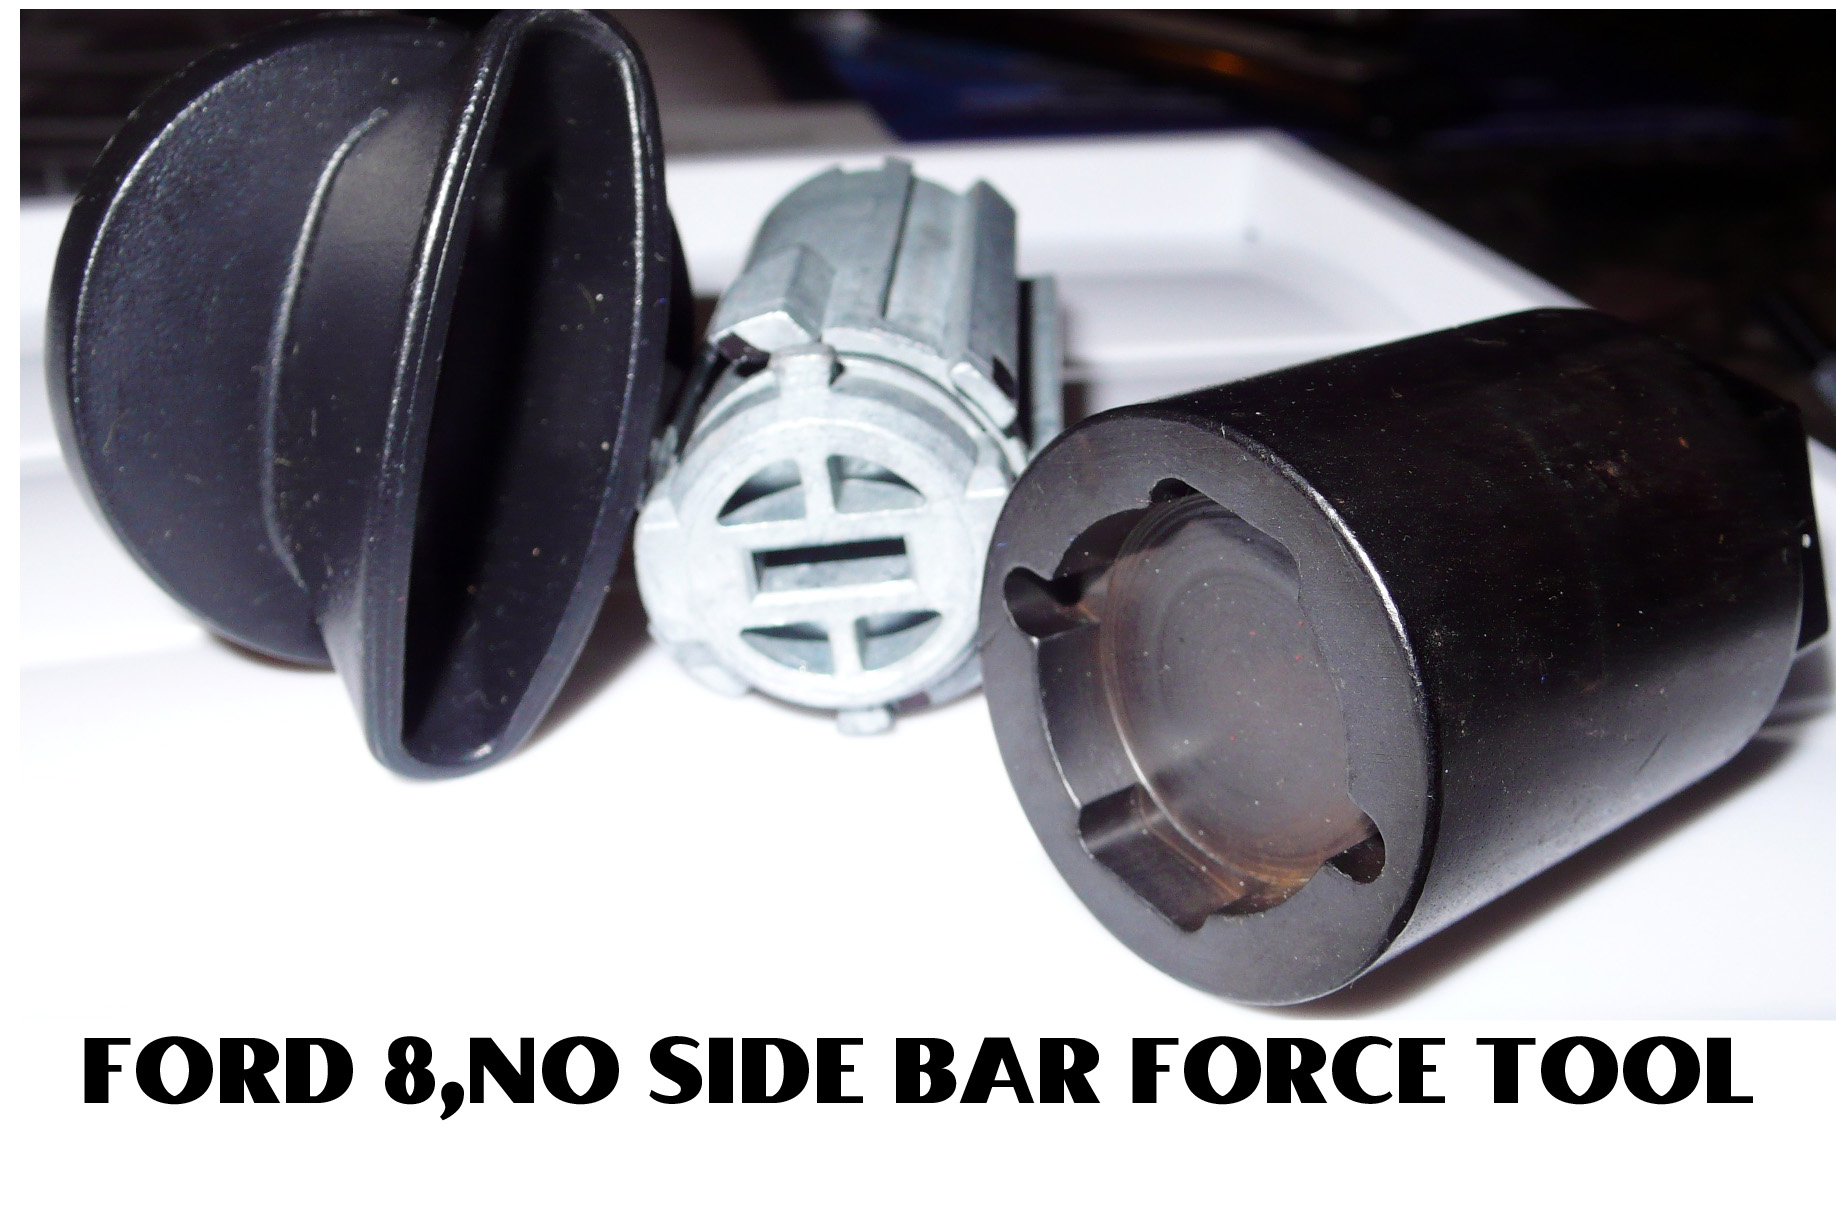 FORD 8 NO SIDE BAR FORCE TOOL